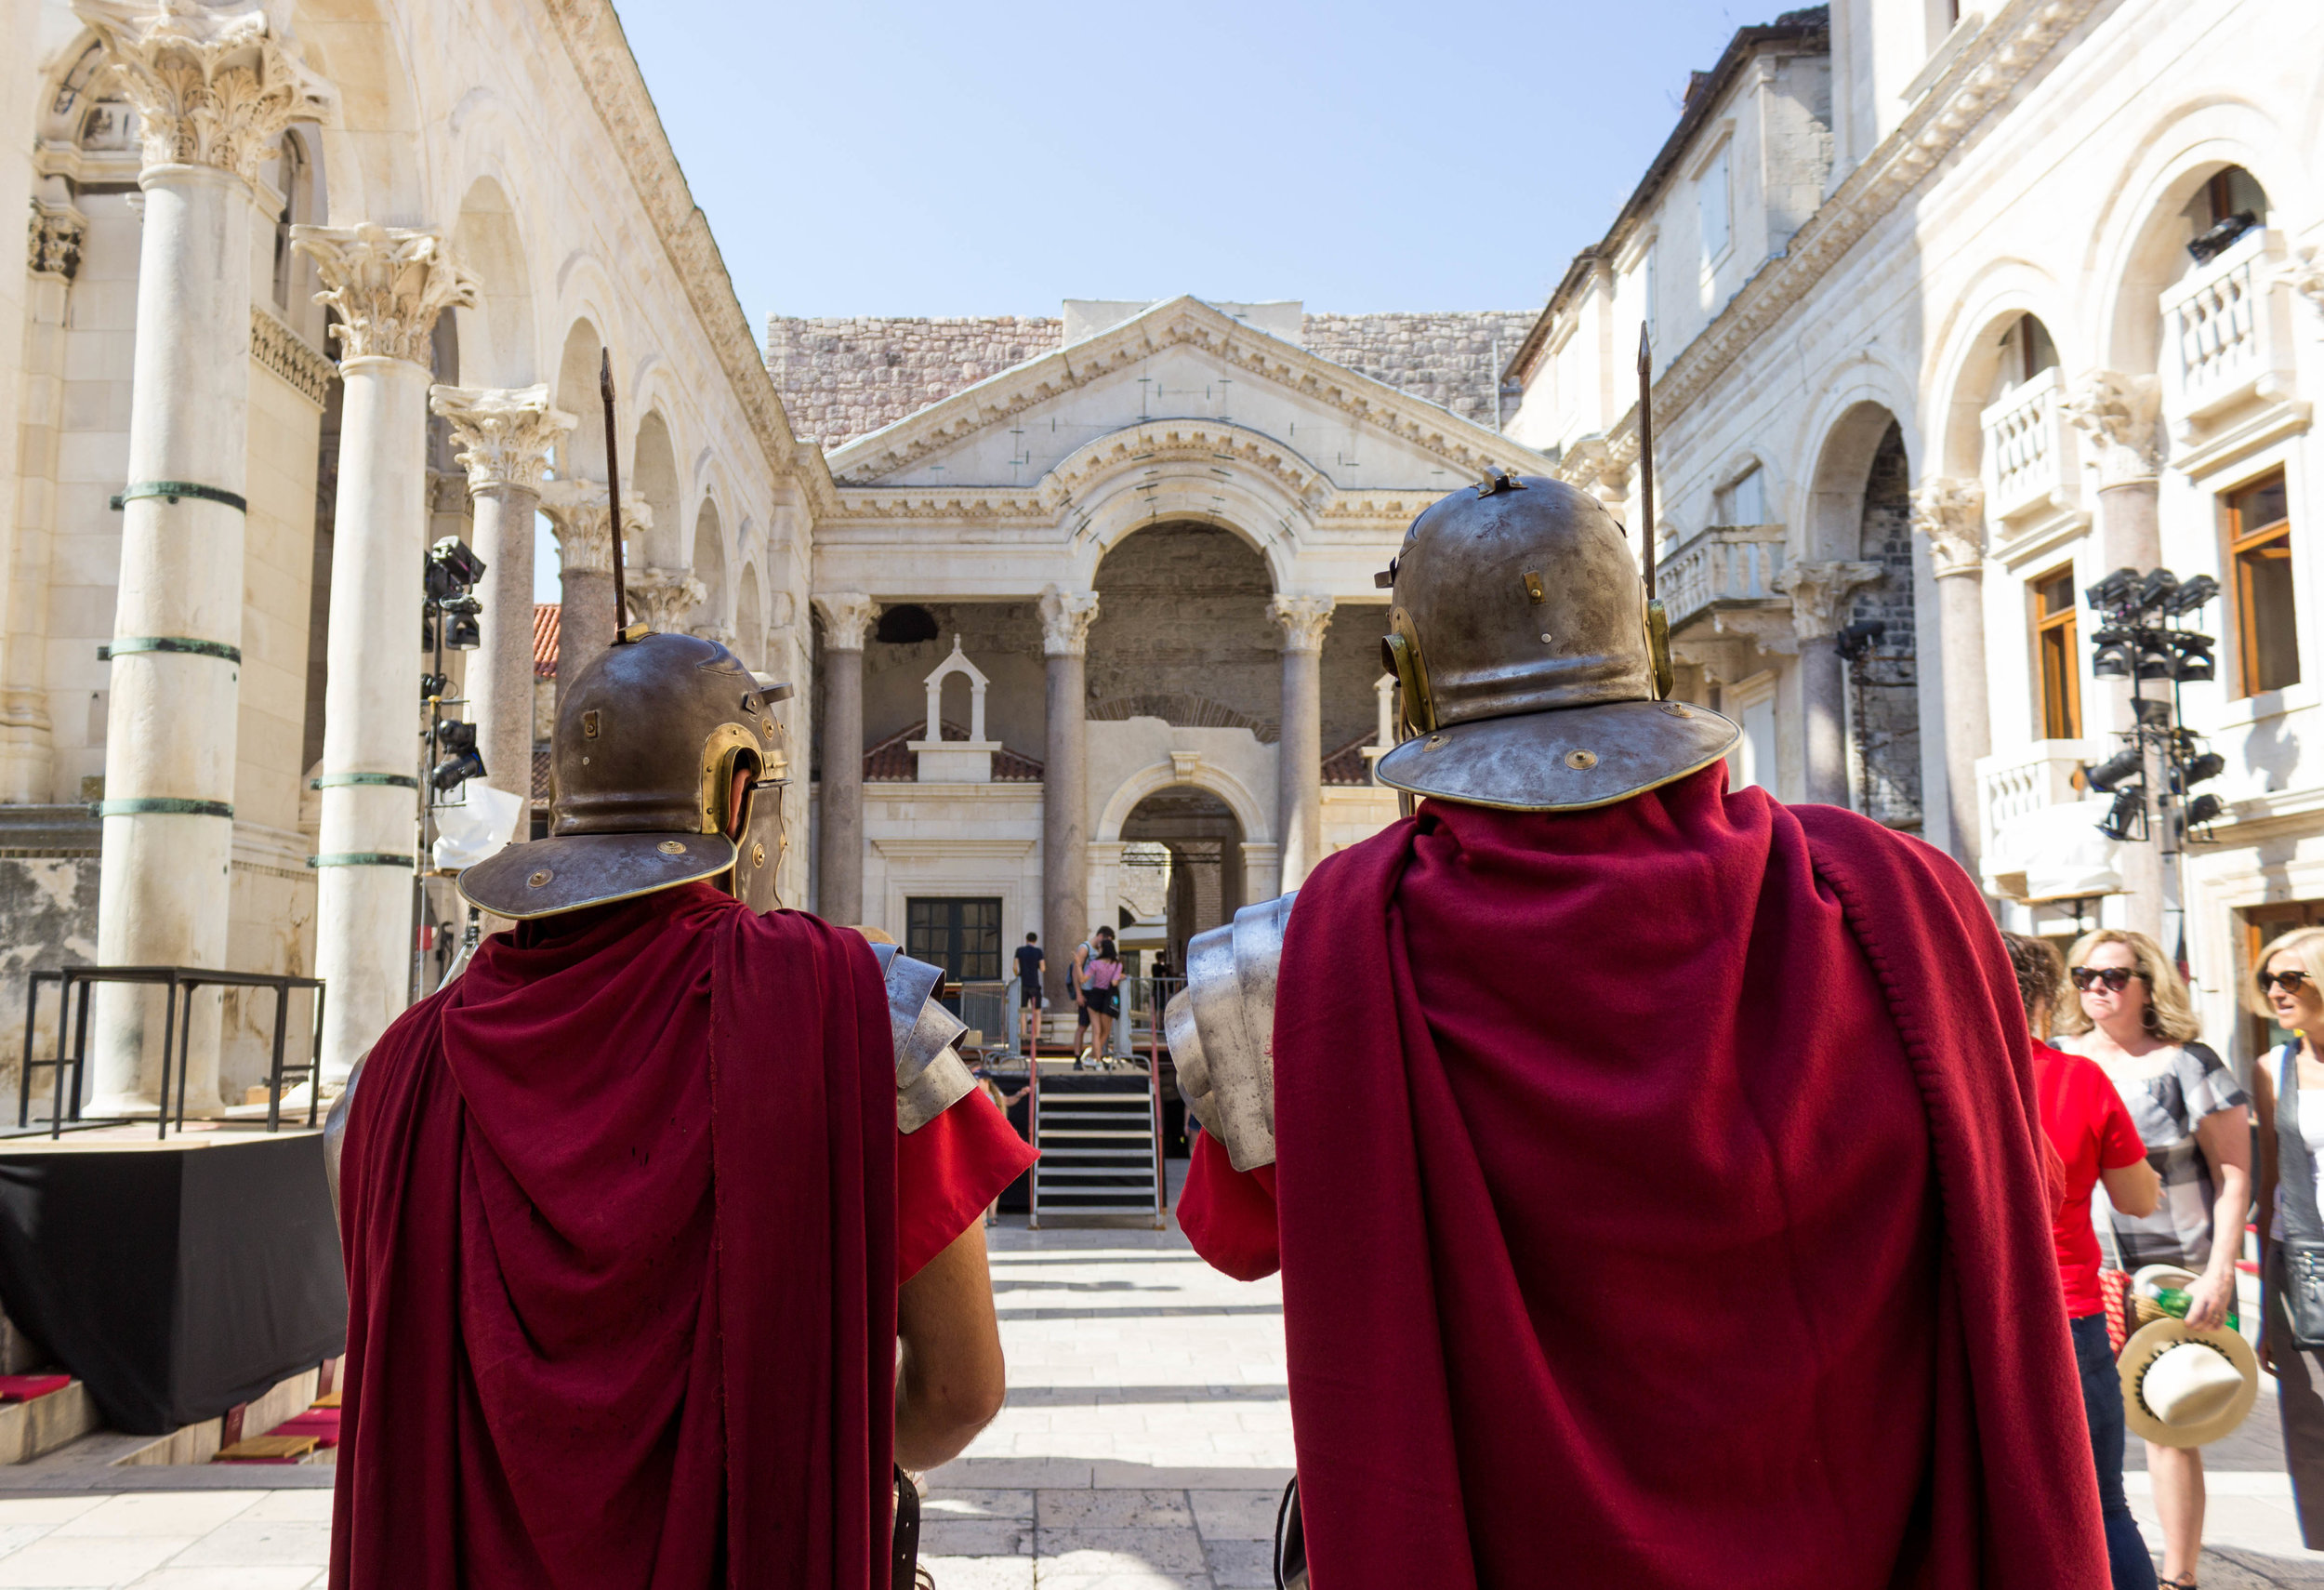 Costumed guards in Diocletian's Palace